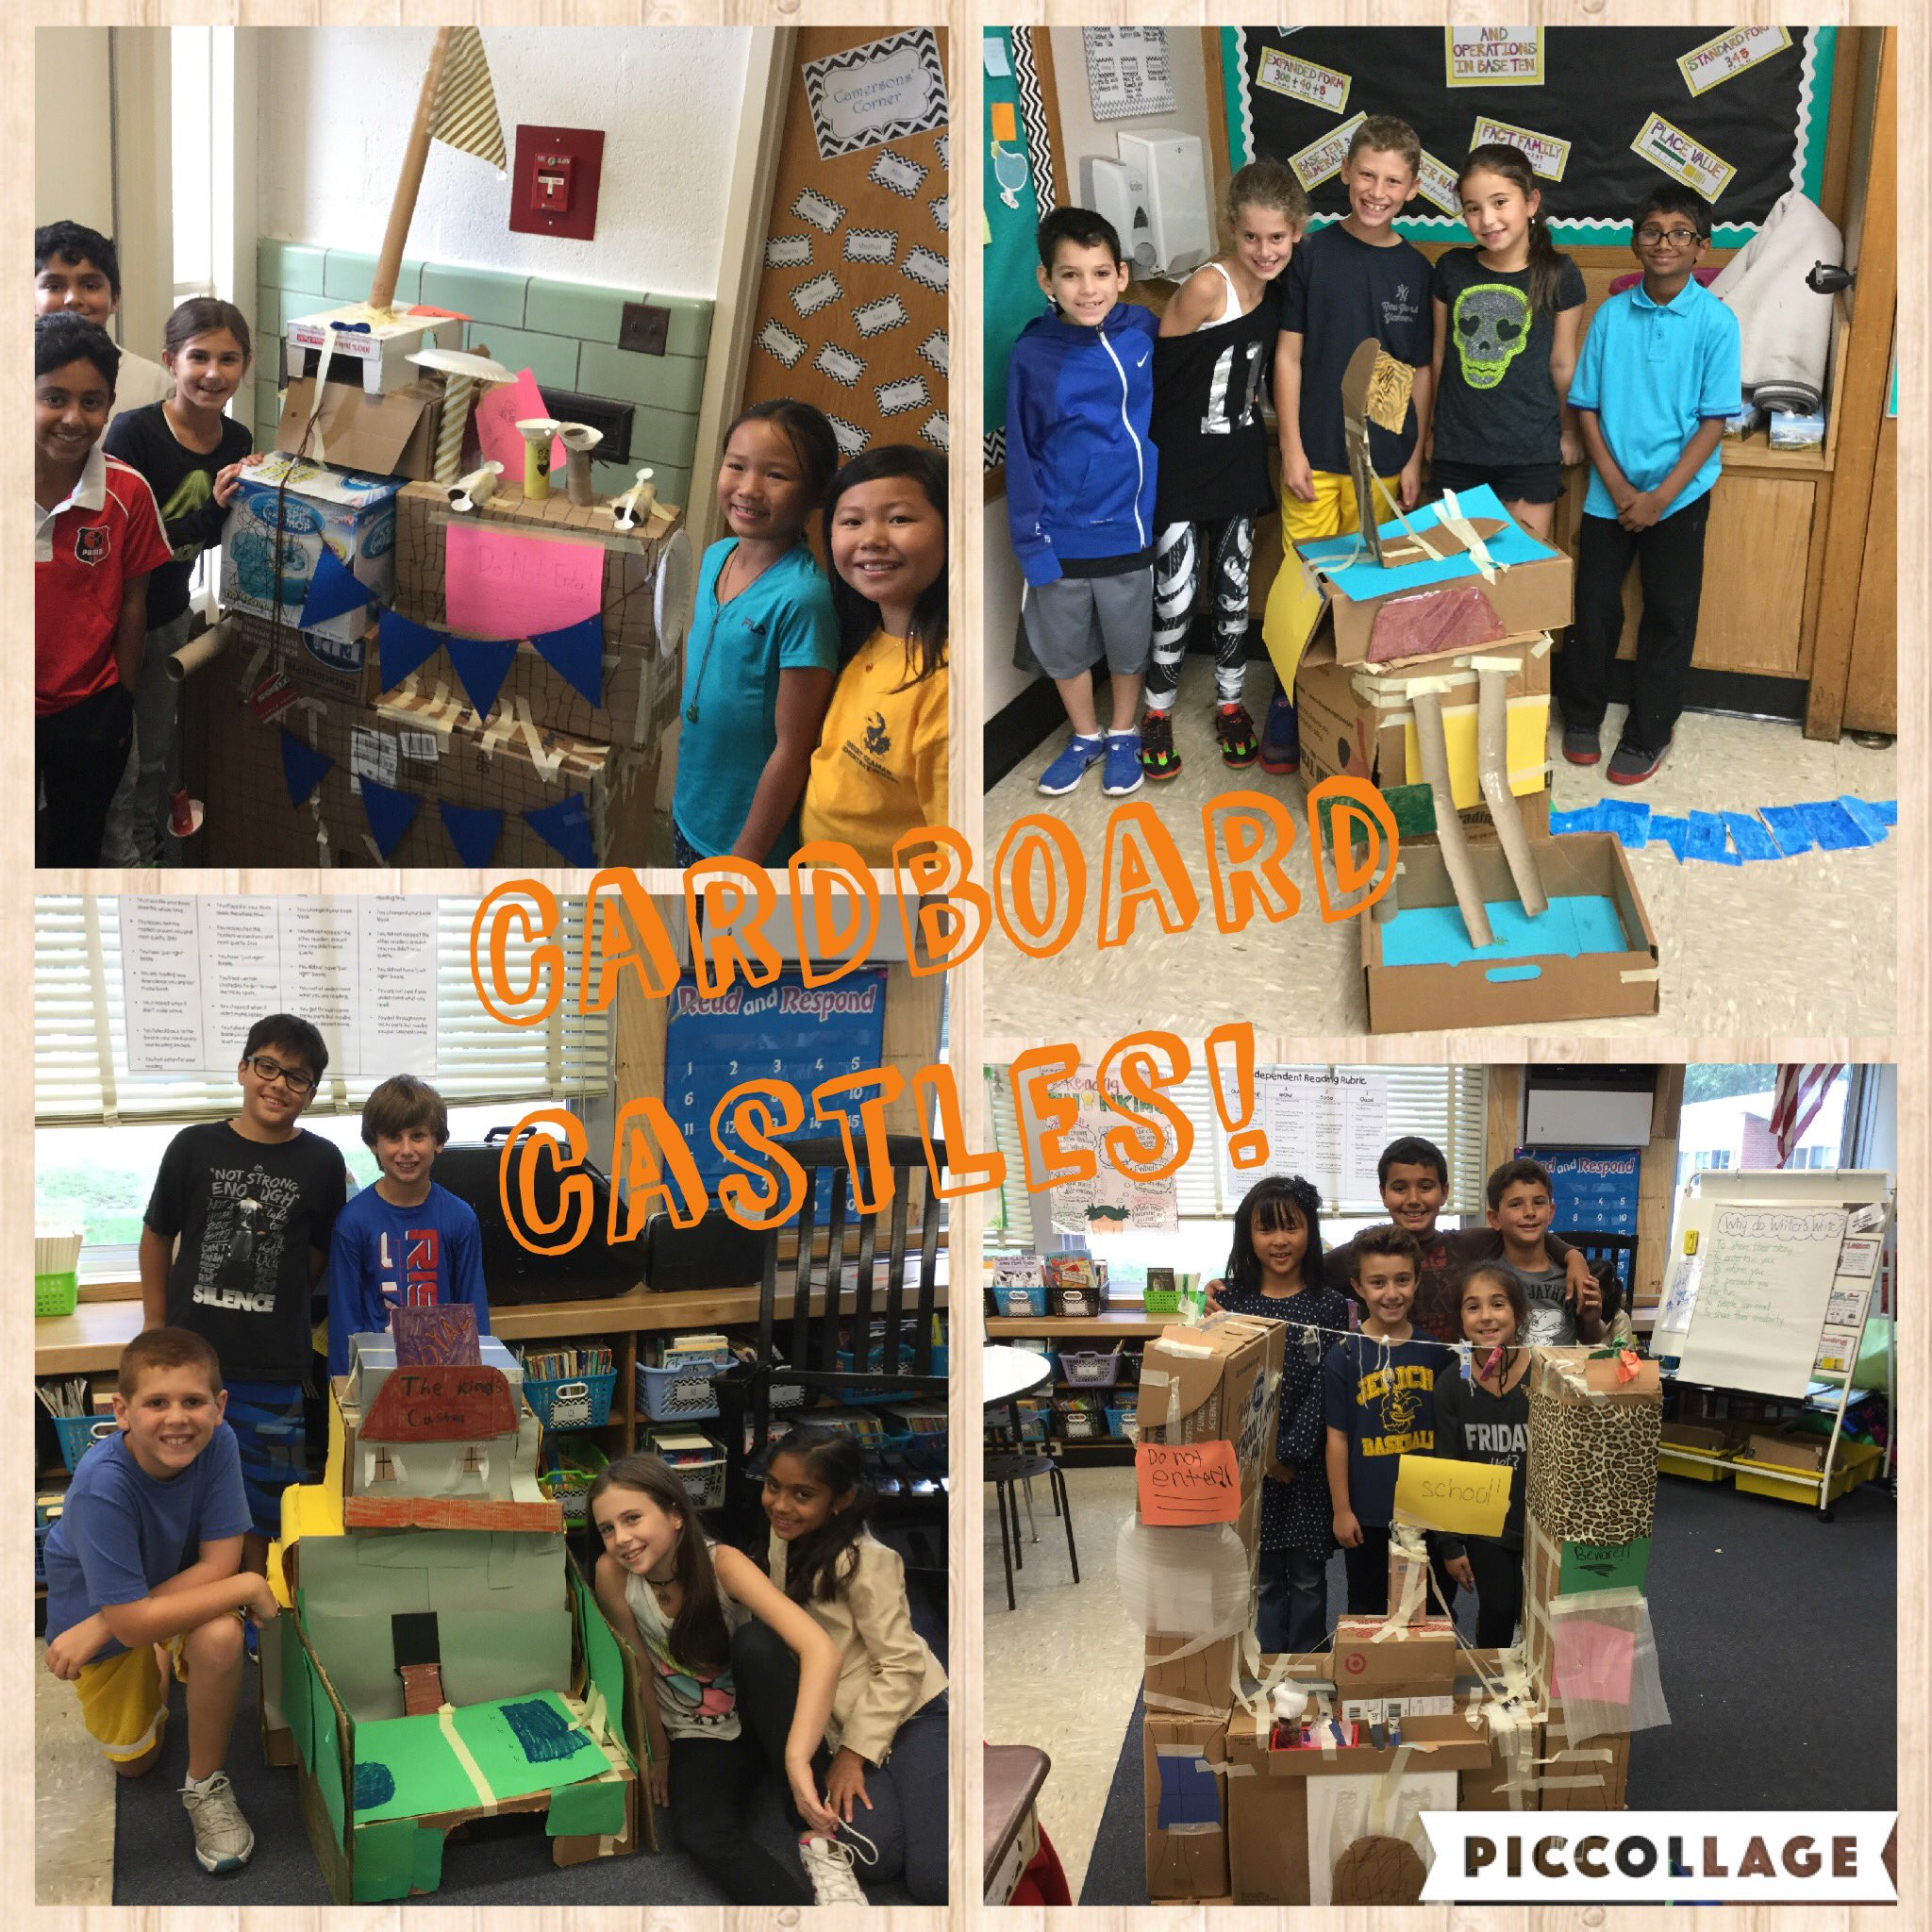 So proud of these engineers! Awesone teamwork! @Ivysherman #seamanstrength https://t.co/vrWMfxaIiM